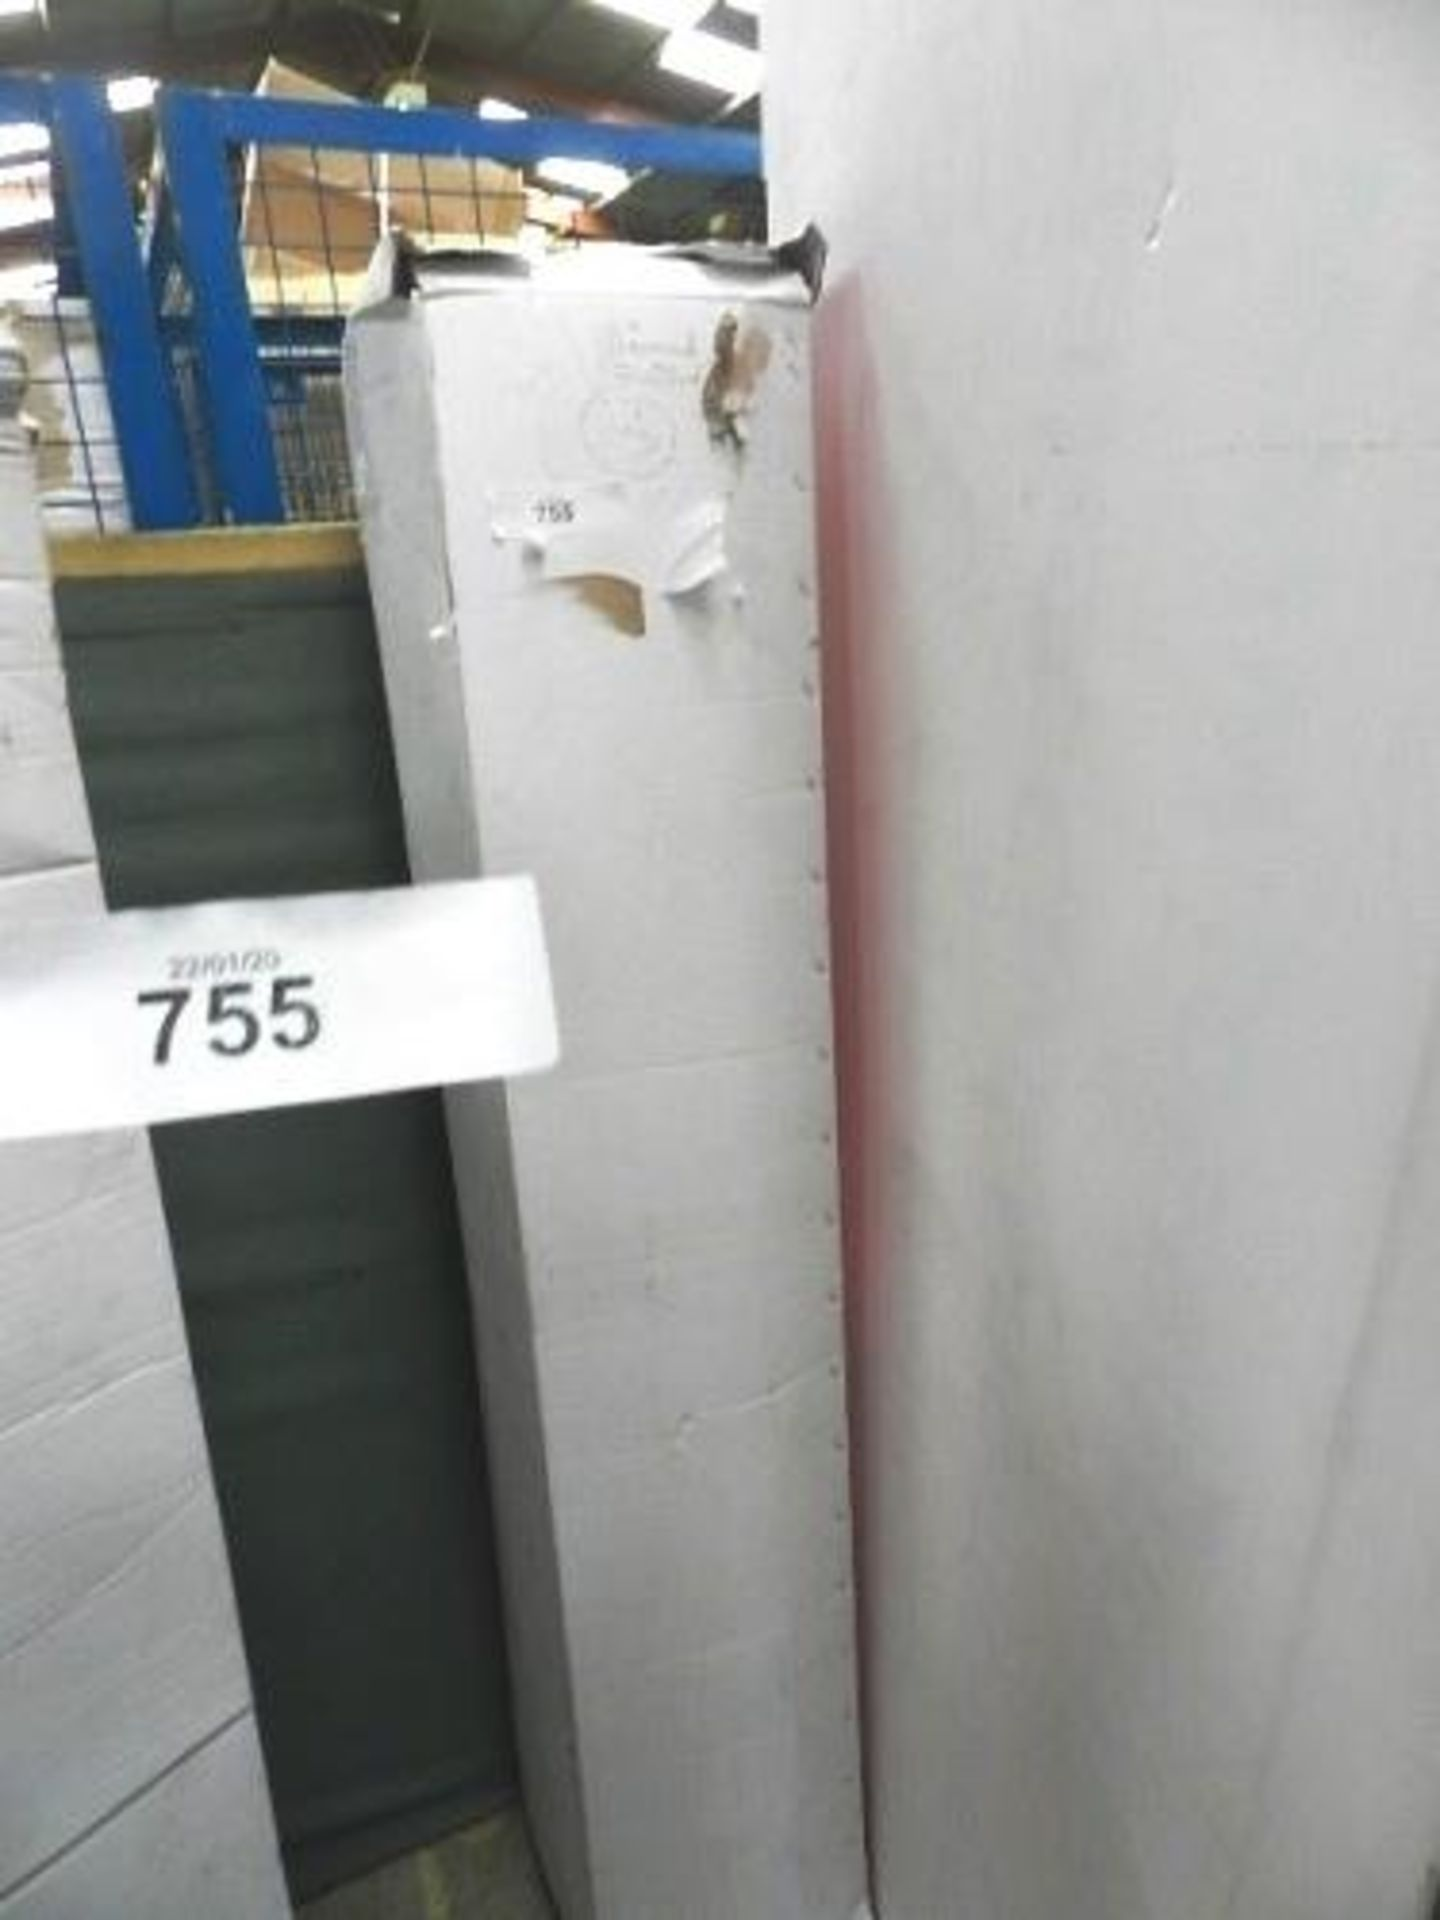 Lot 755 - 1 x sprung double mattress, approximately 5ft wide - Sealed new in box (GSF31)